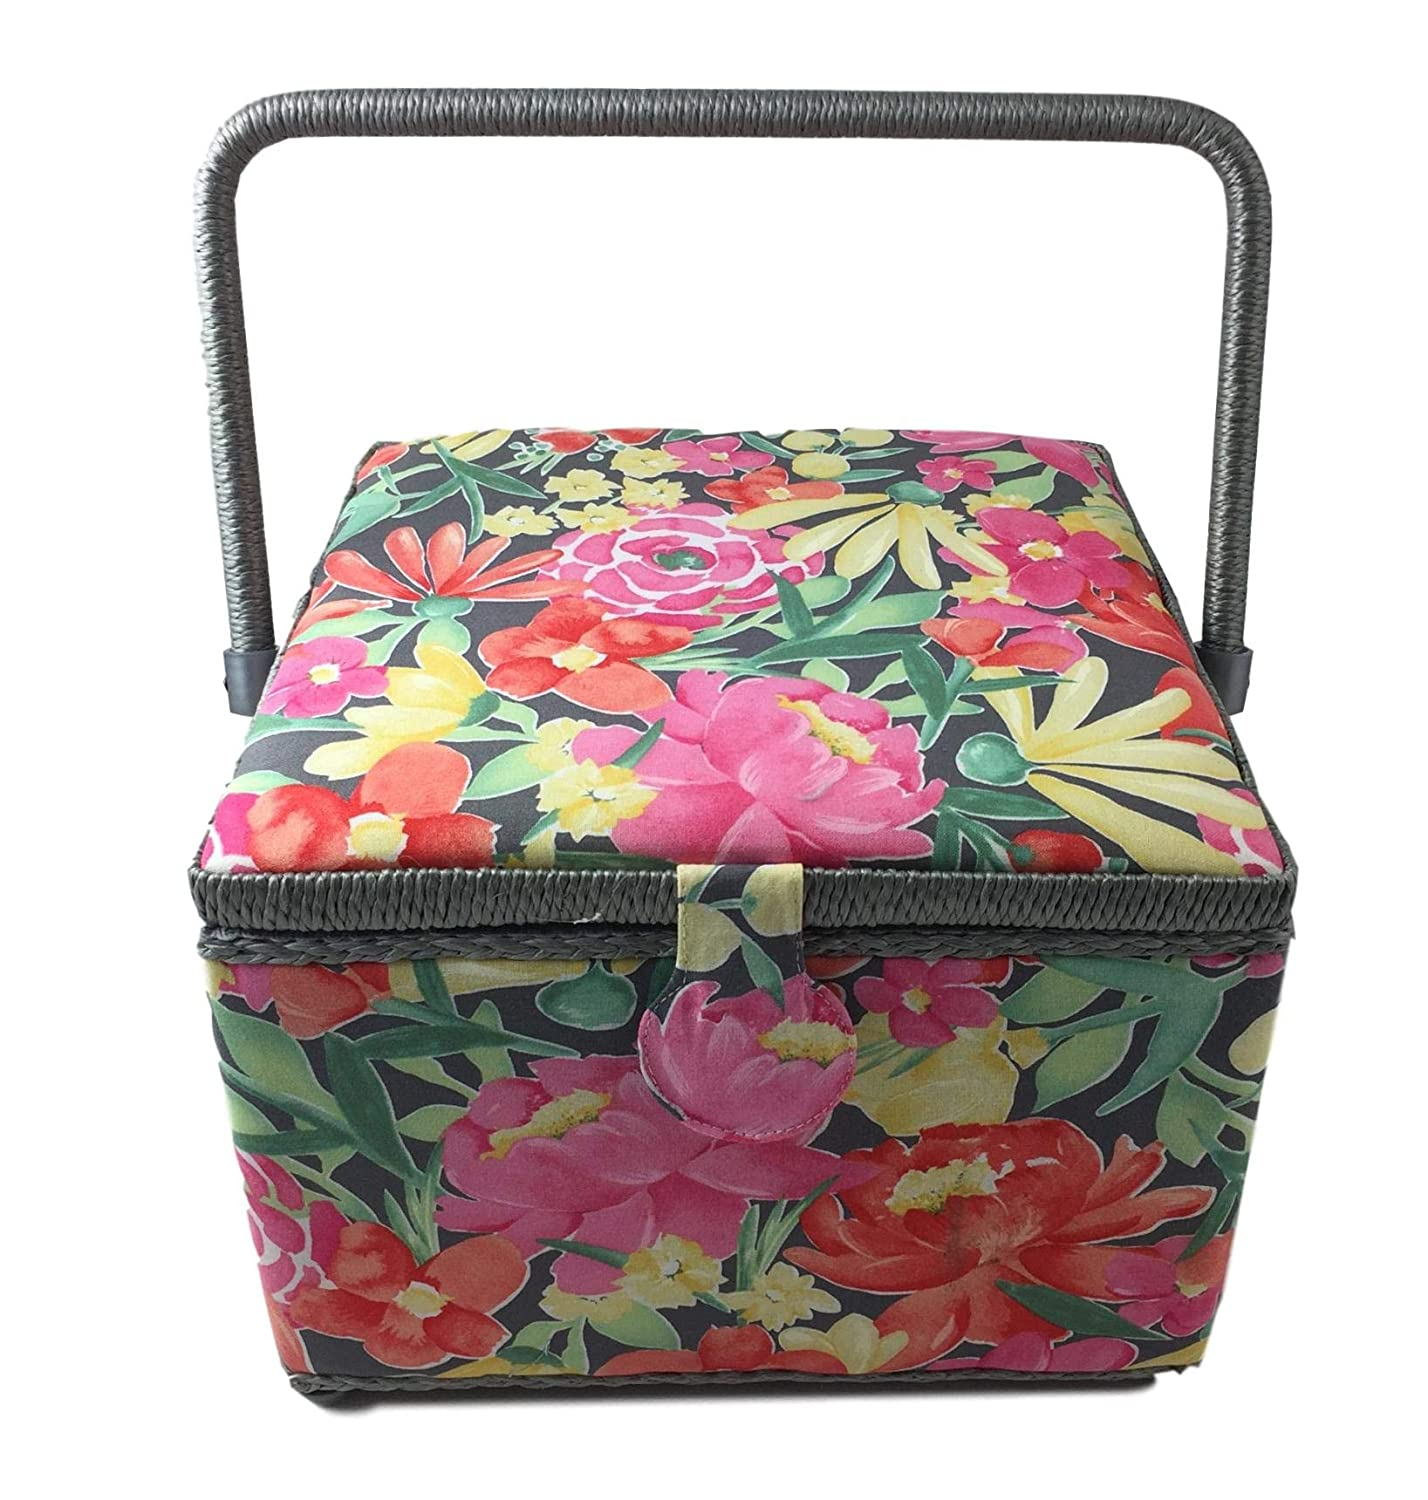 Jane Square Sewing Basket Box with Plastic Tray Organizer Dritz St Large 10x10x7, Pink Floral